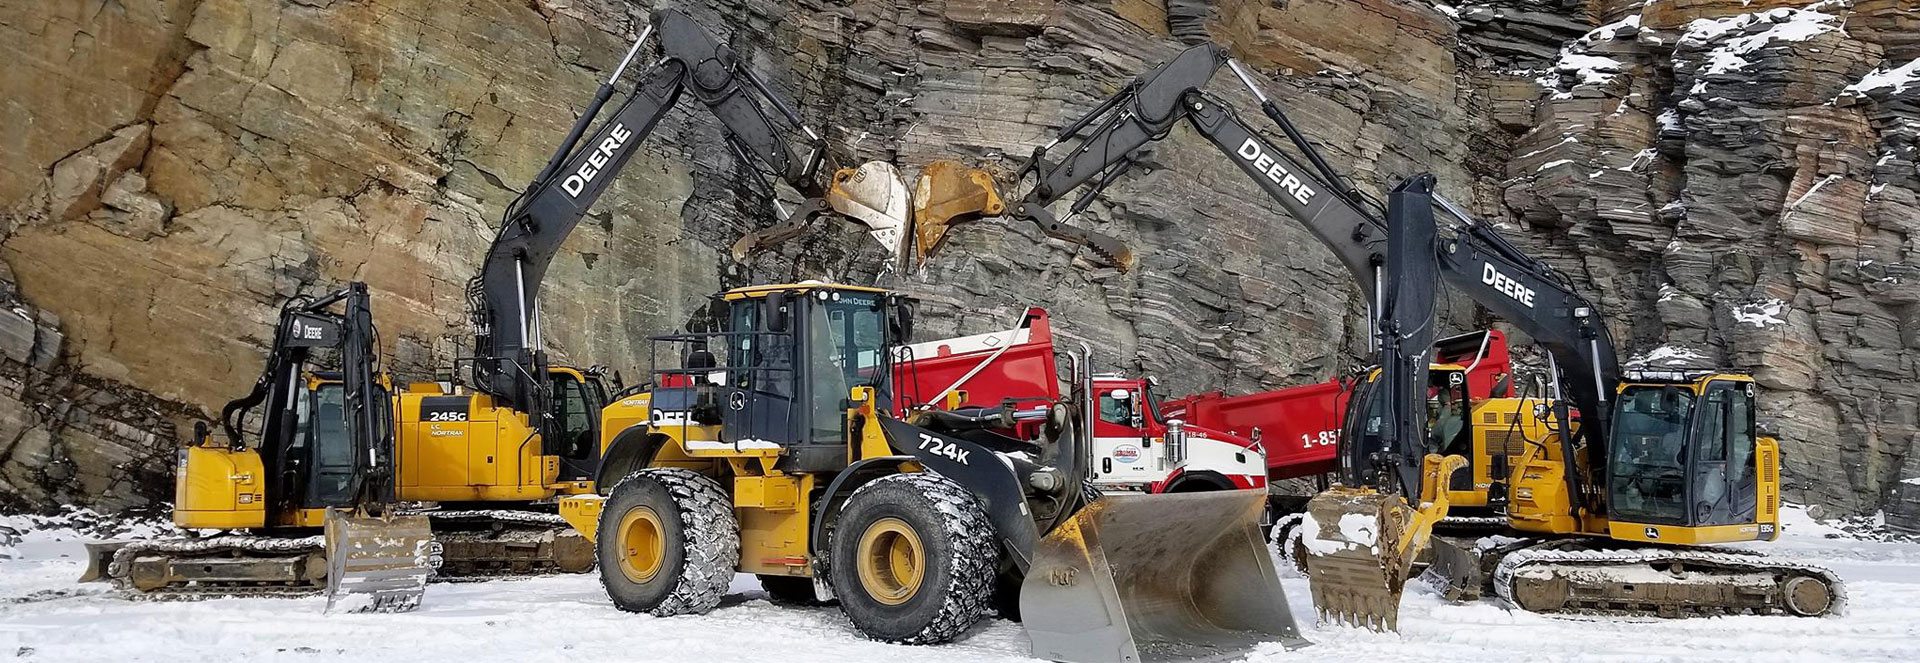 Photo of heavy equipment in quarry in winter